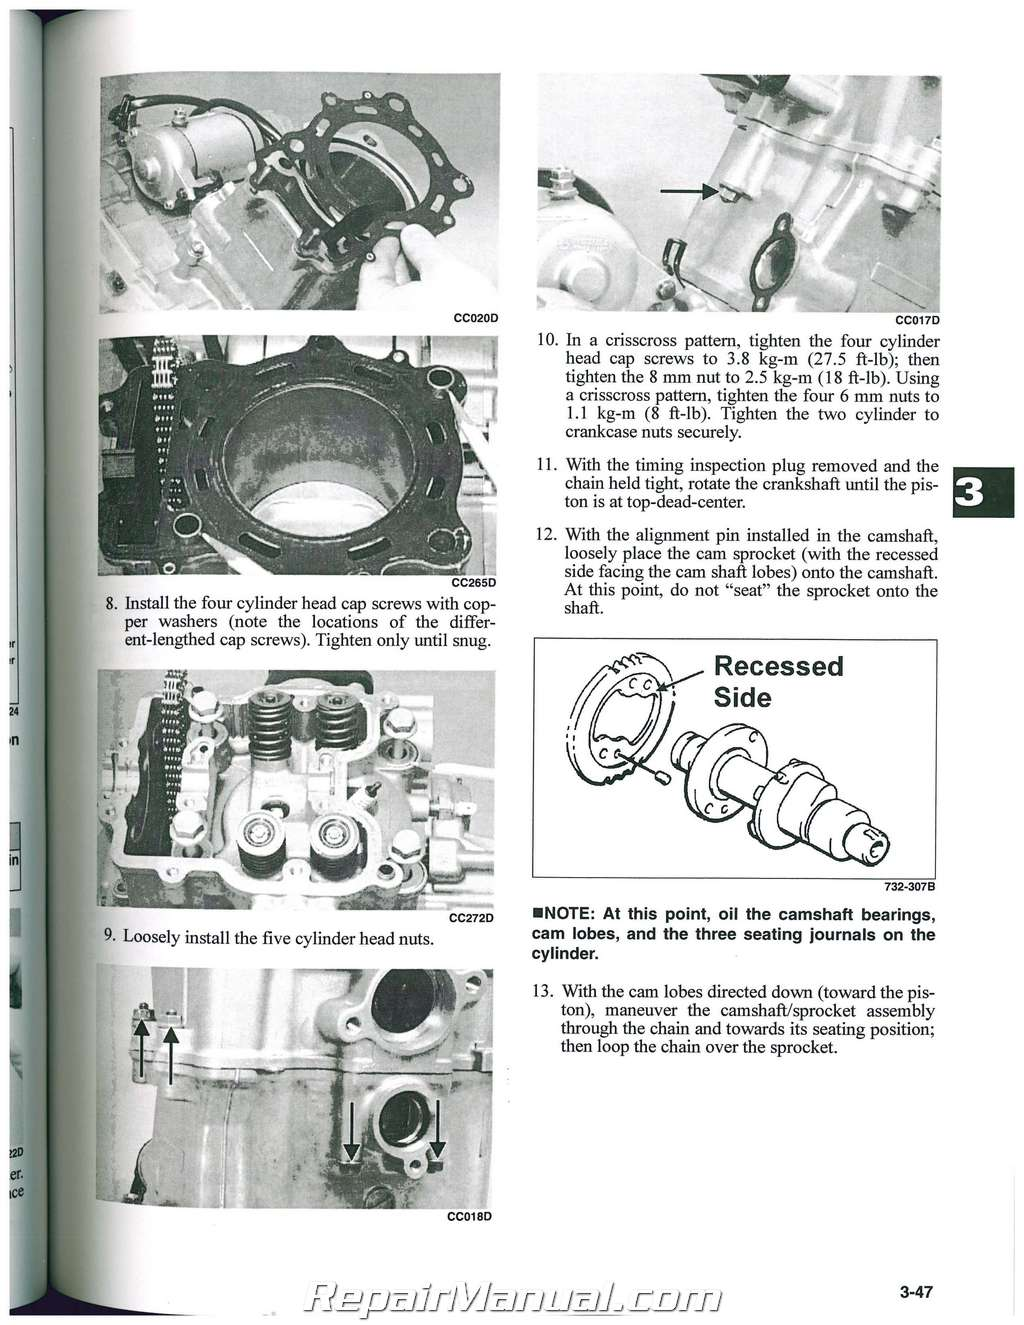 ... arctic cat 300 4x4 service manual pdf. Image not found or type unknown